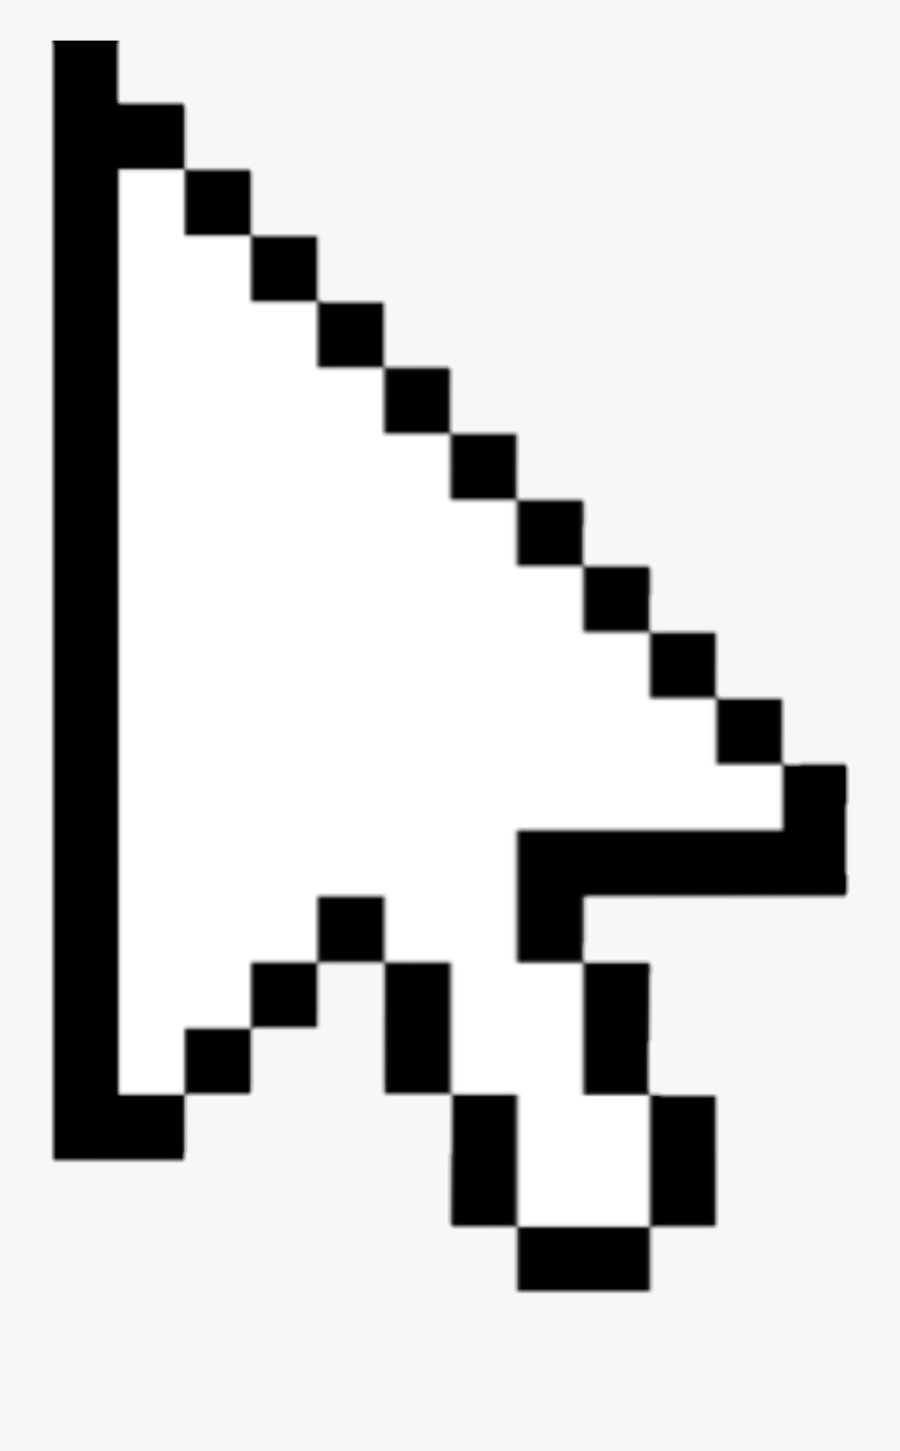 Computer Mouse Pointer Cursor Transparency Clip Art.